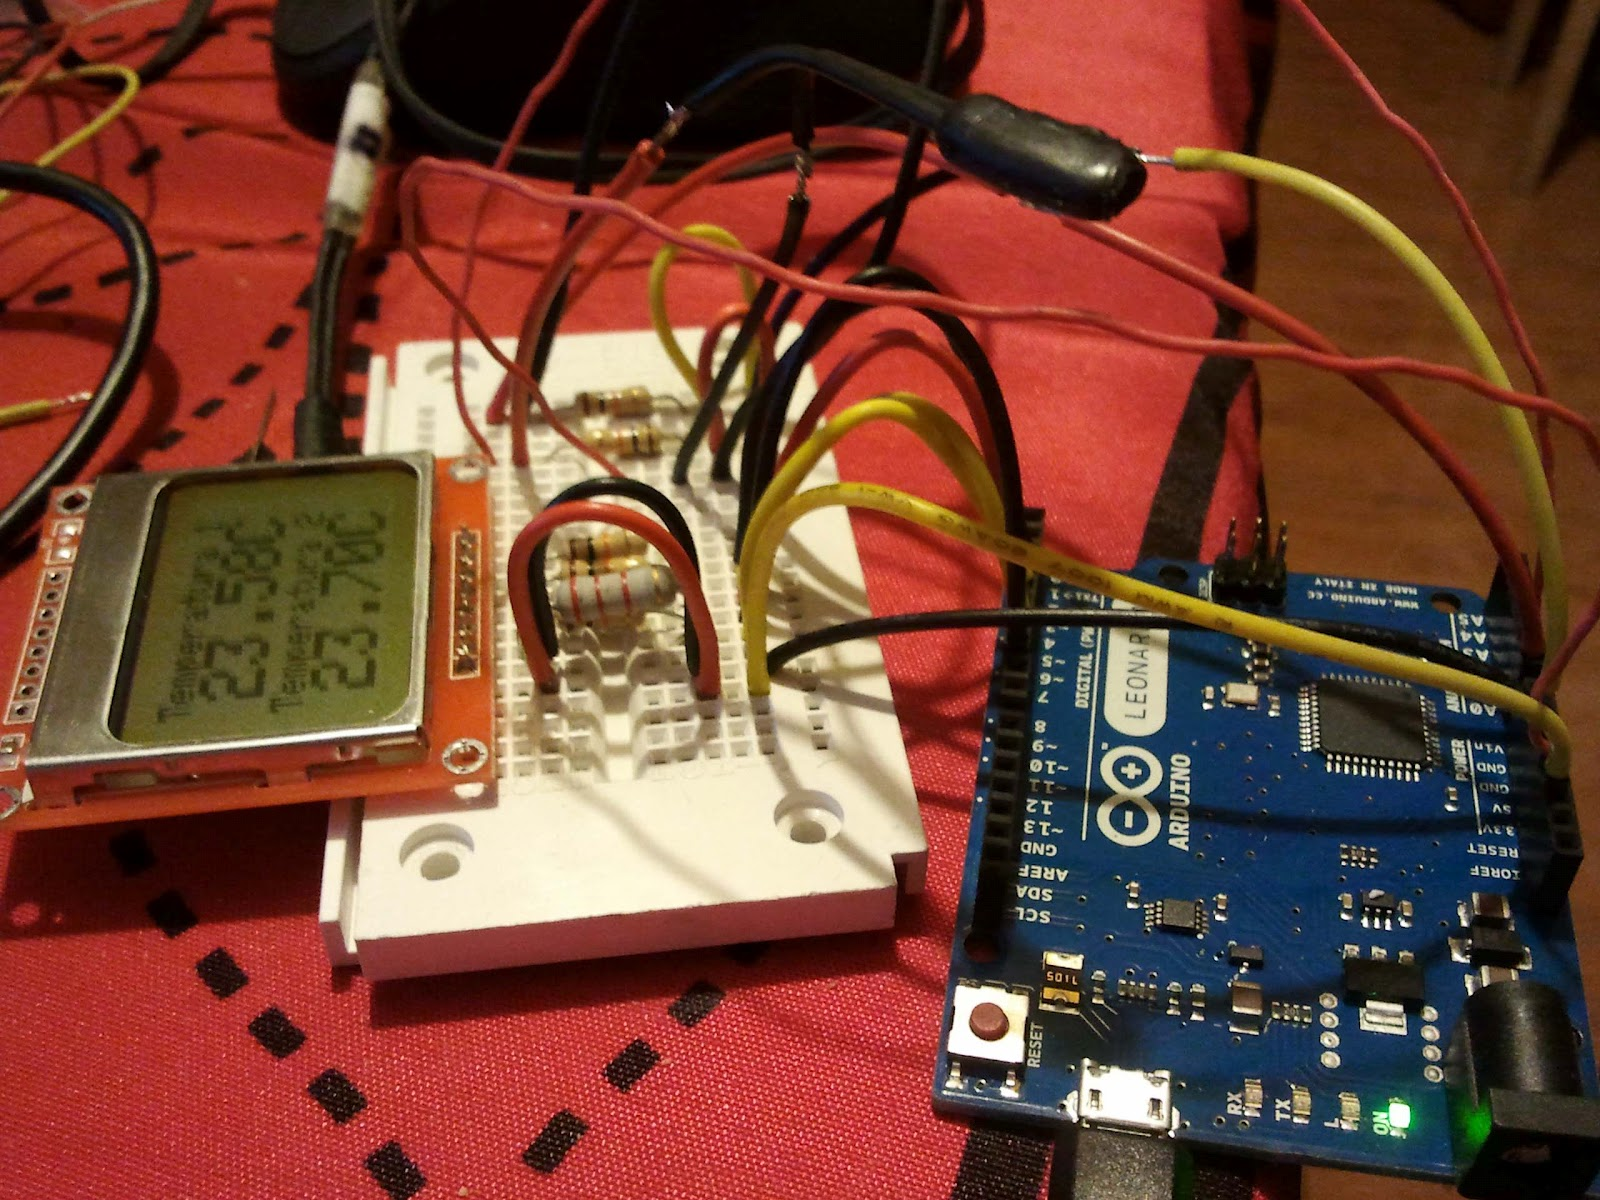 Technology For A Sustainable Future How To Use Thermistor Or Circuit Measuring Temperature Using And Arduino We Could Example Obtain This Result By Connecting Second In A1 Duplicating Parts Of The Code But Well See Another Post